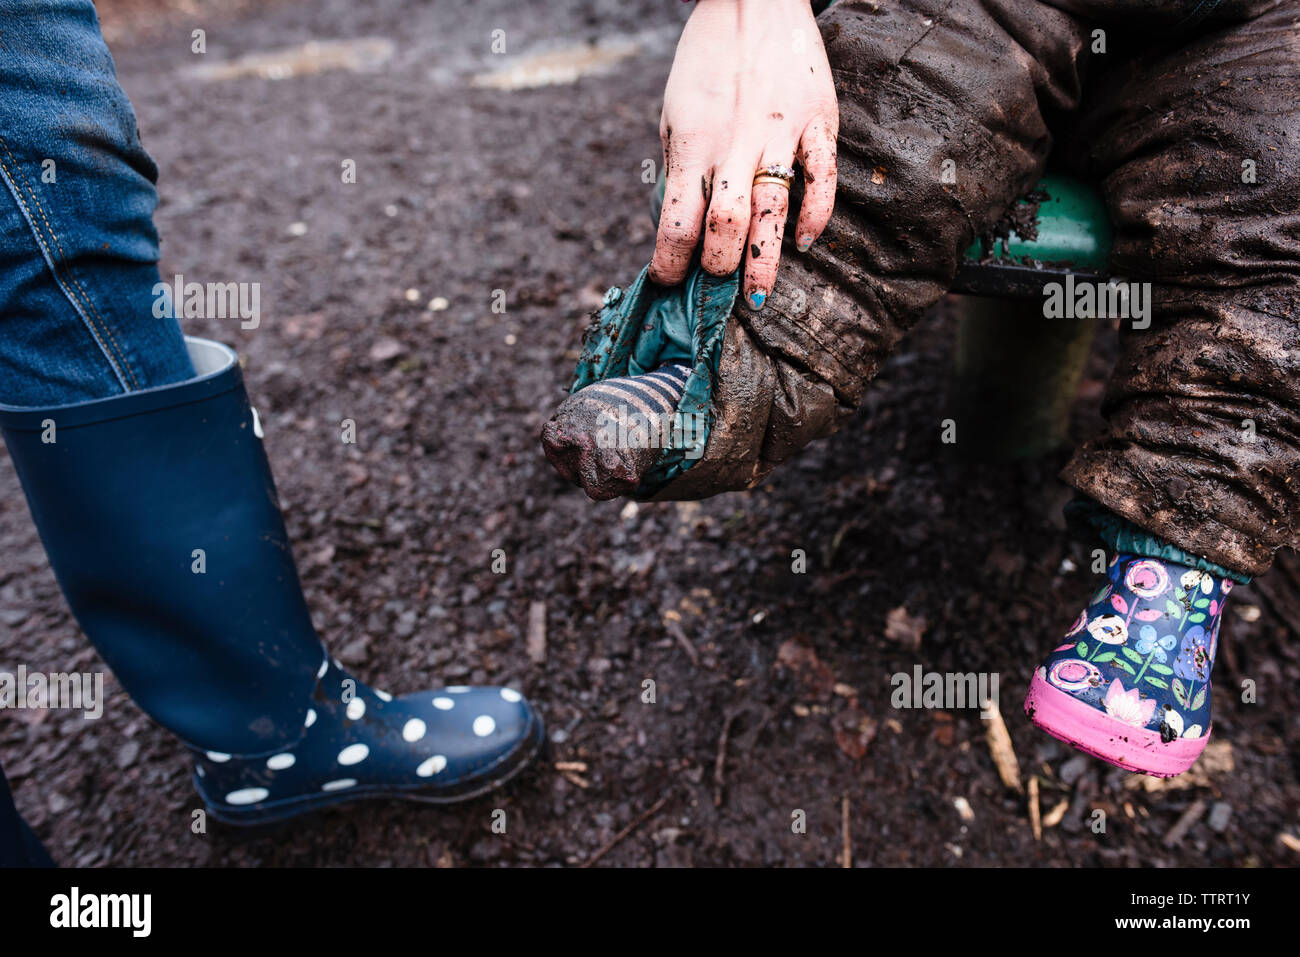 Cropped image of mother holding child's messy pants sitting on slide at park - Stock Image